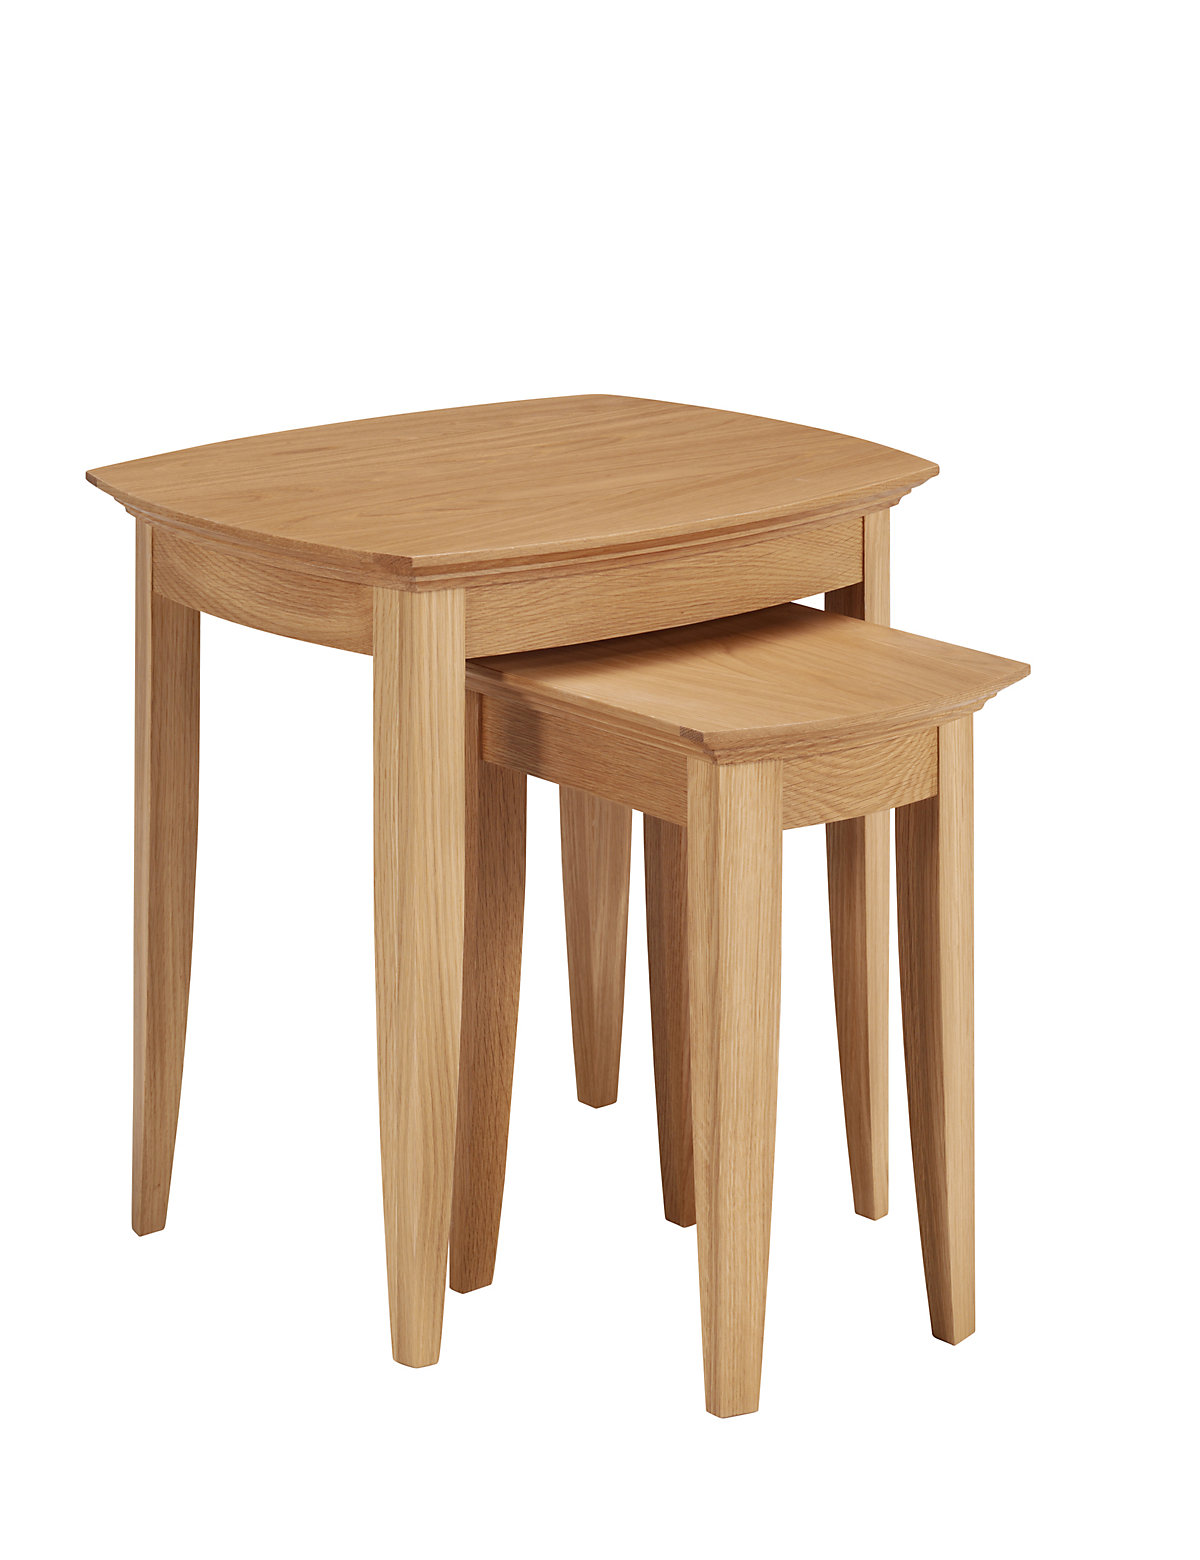 2 Burchill Nest Tables